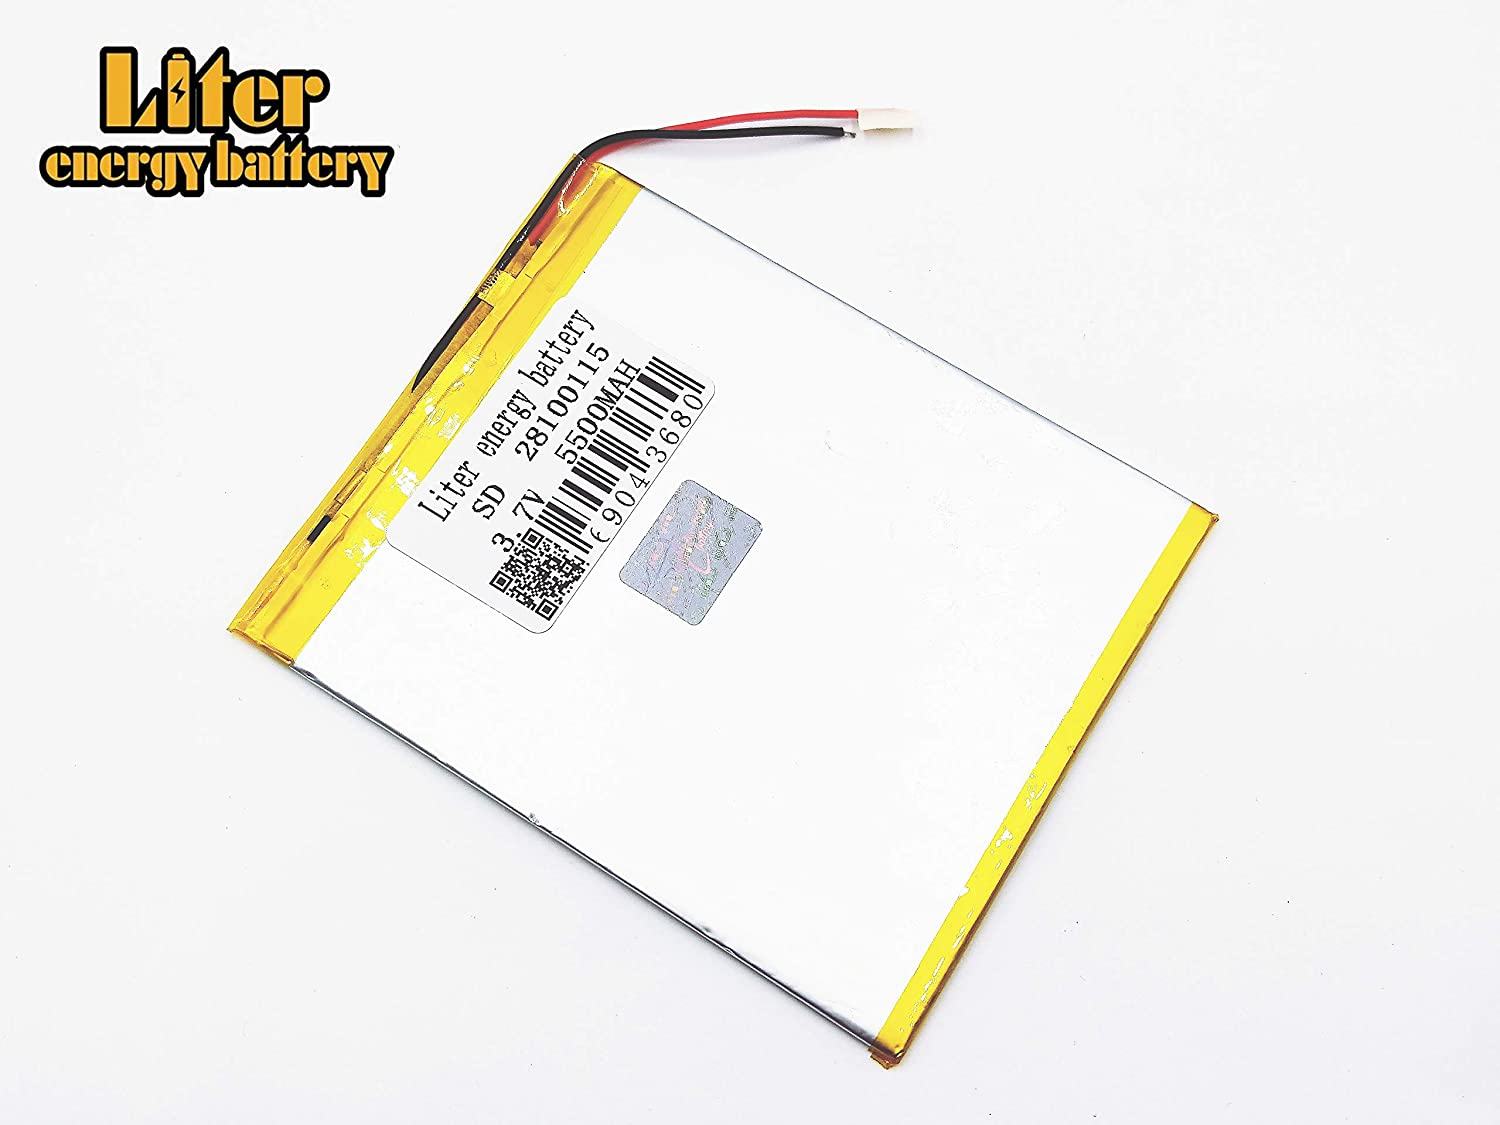 3.7V 3000mAh 2970115 Lithium Polymer Ion Rechargeable Battery Lithium Polymer Li-Po Battery for MP4 GPS MP3 Bluetooth Stereo DIY Gift